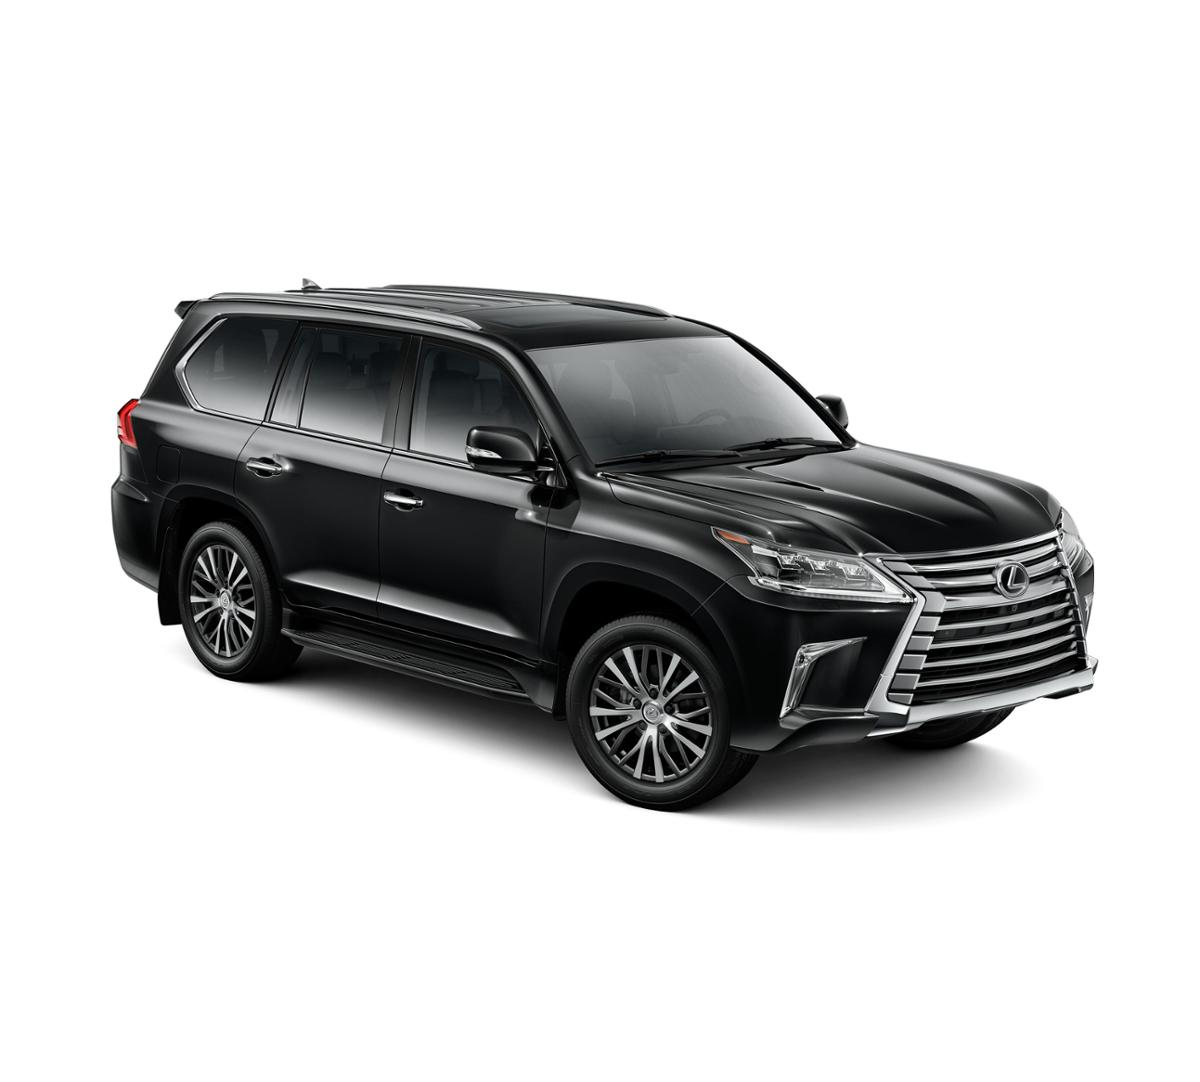 2019 Lexus LX 570 Vehicle Photo in Houston, TX 77546